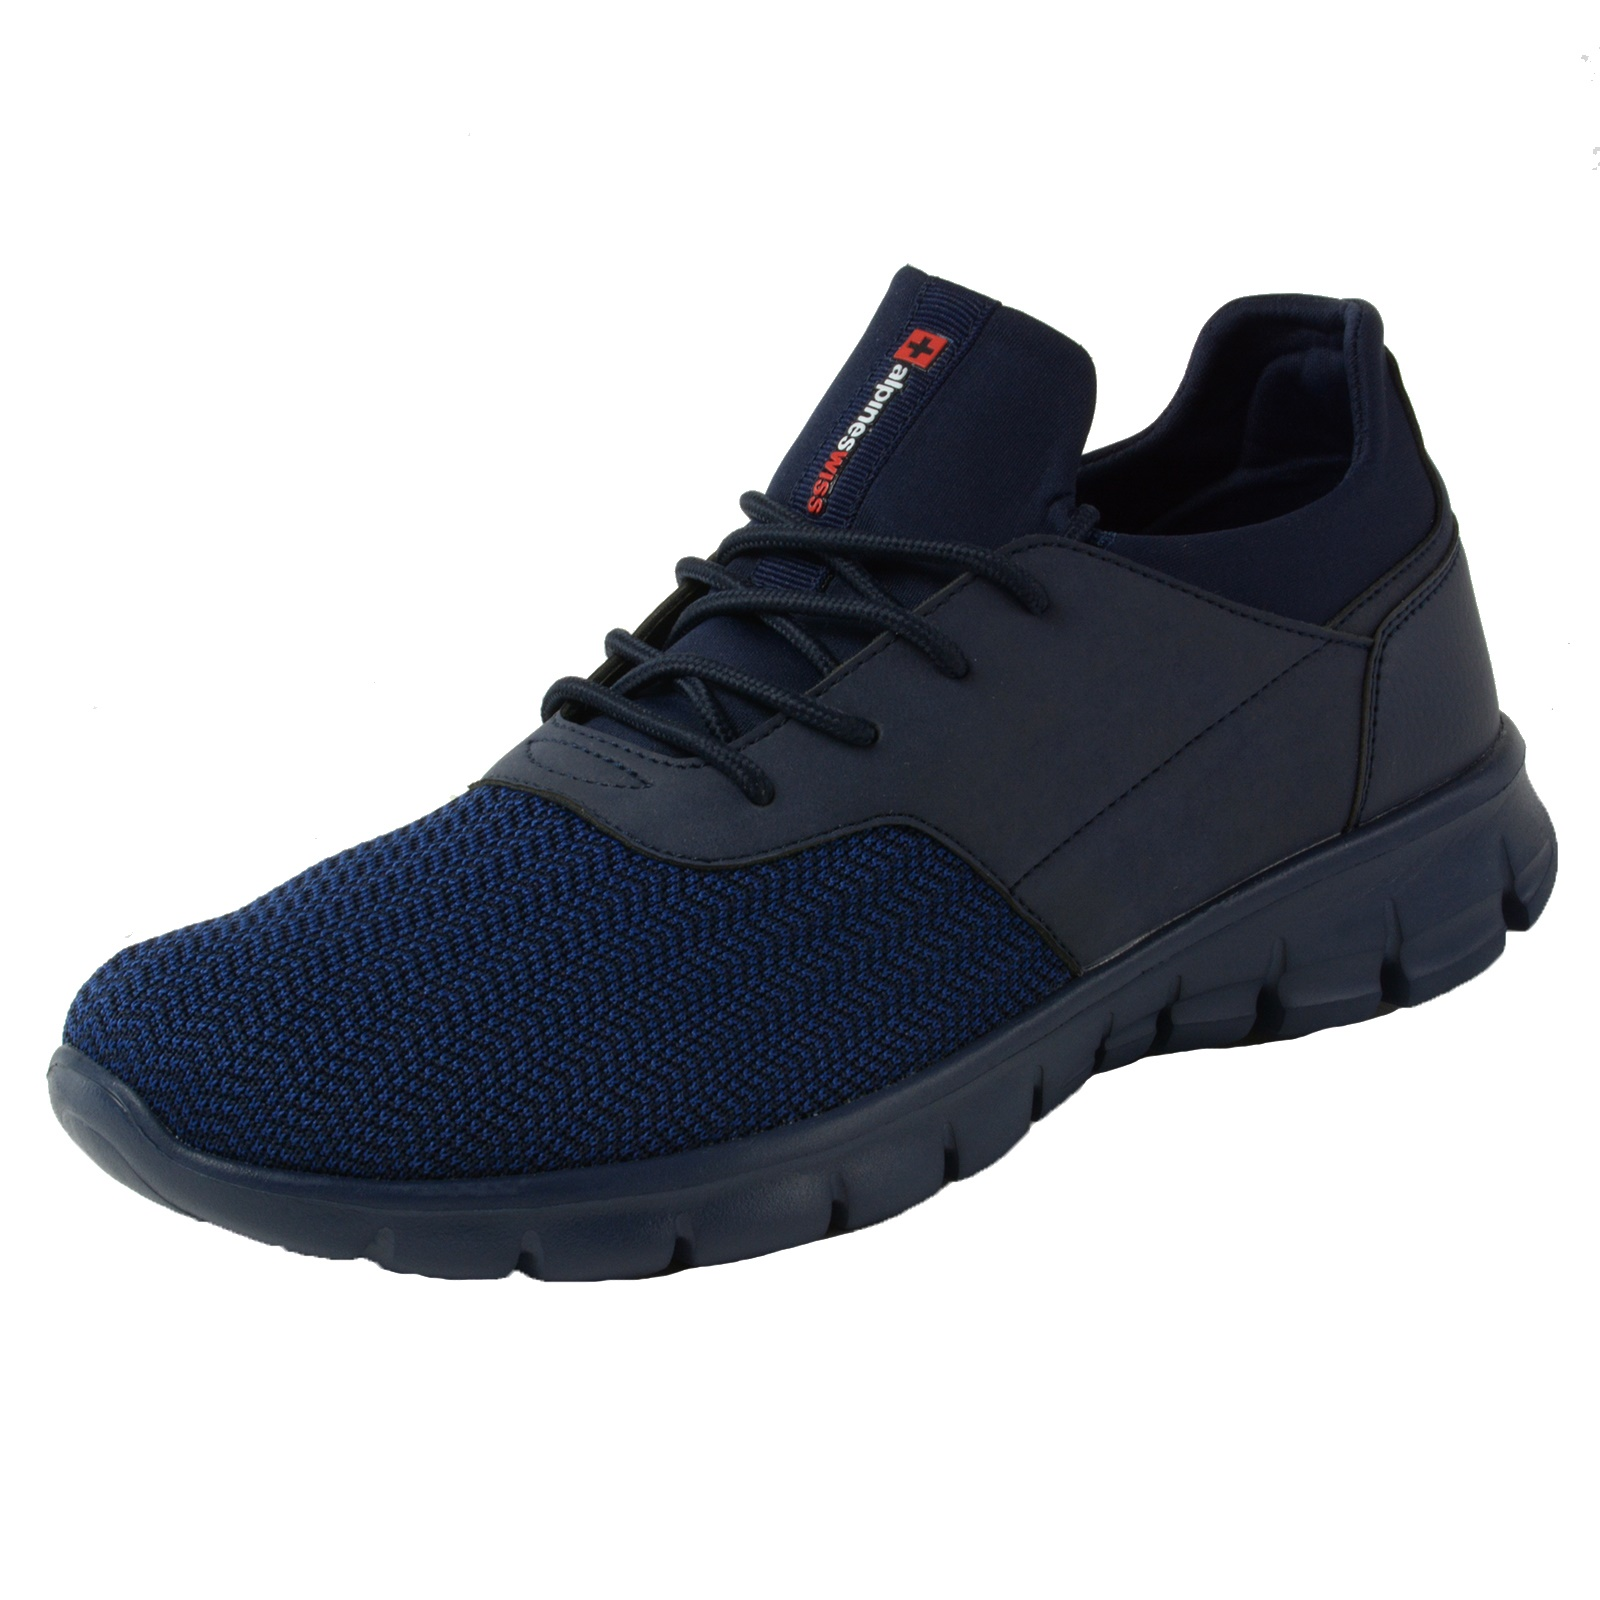 c6cde604cfb Alpine Swiss Leo Men SNEAKERS Flex Knit Tennis Shoes Casual Athletic  Lightweight Size 13 Navy